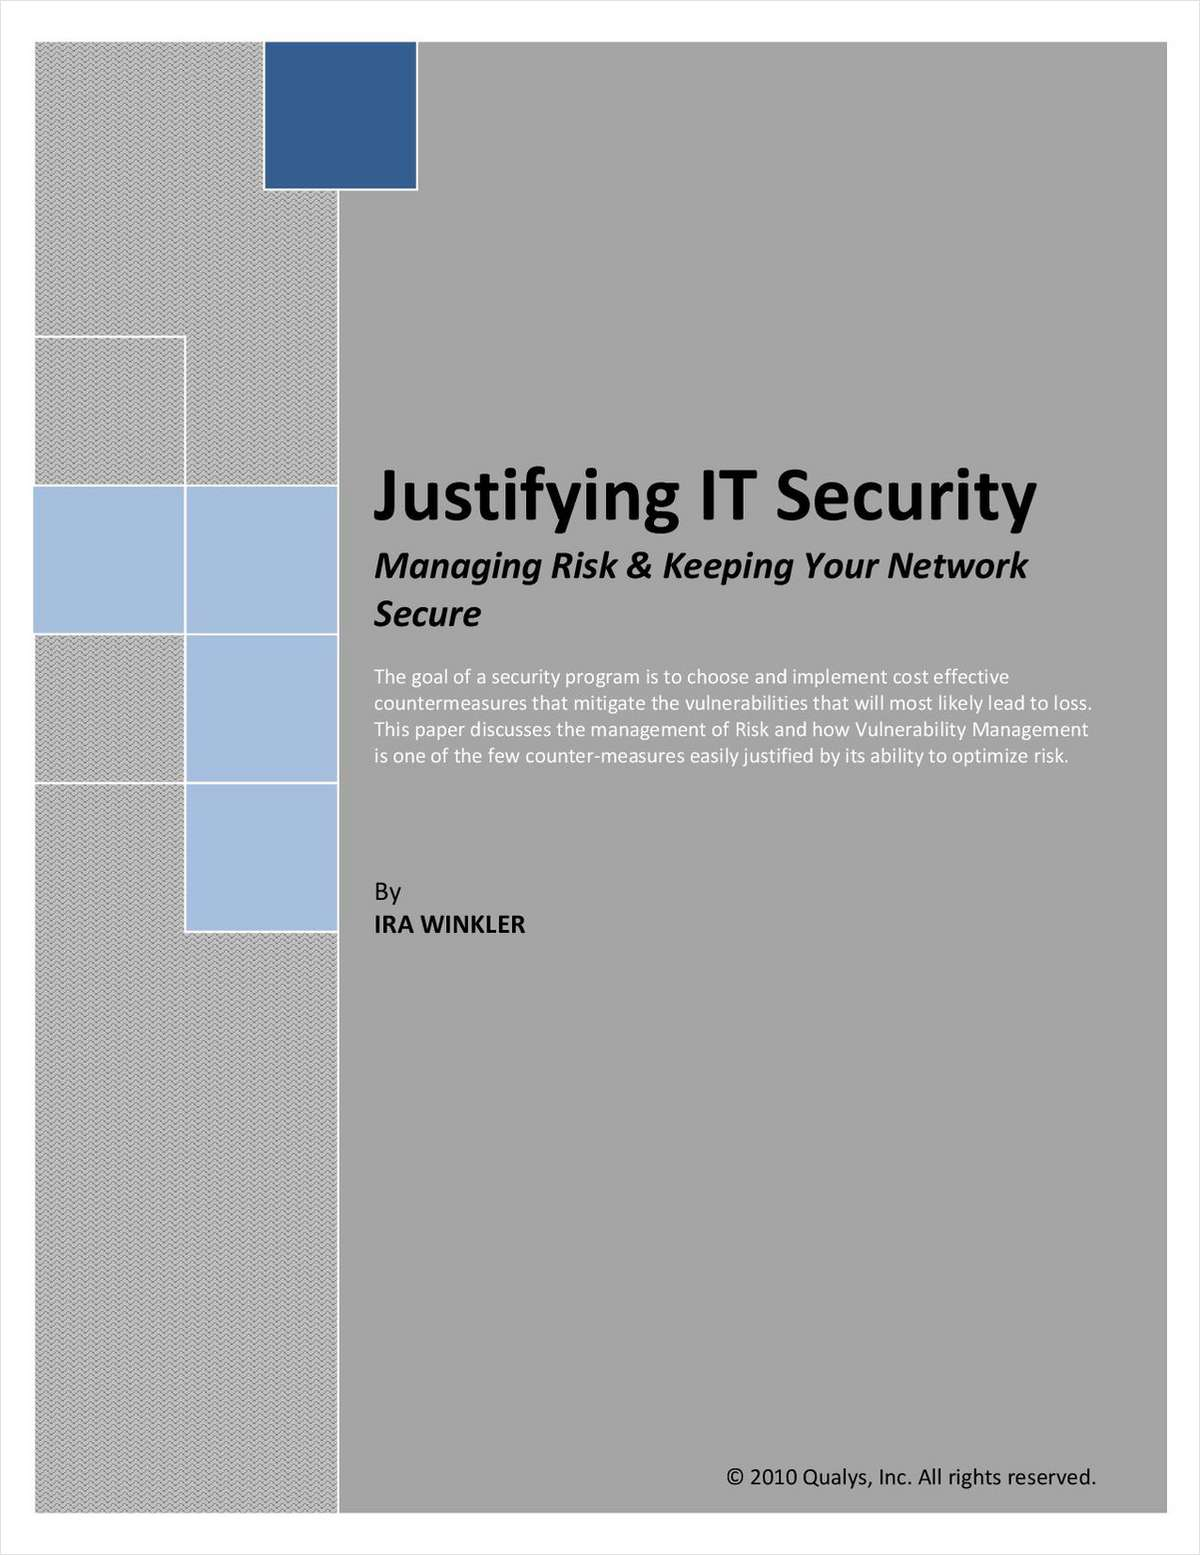 Justifying IT Security: Managing Risk & Keeping Your Network Secure